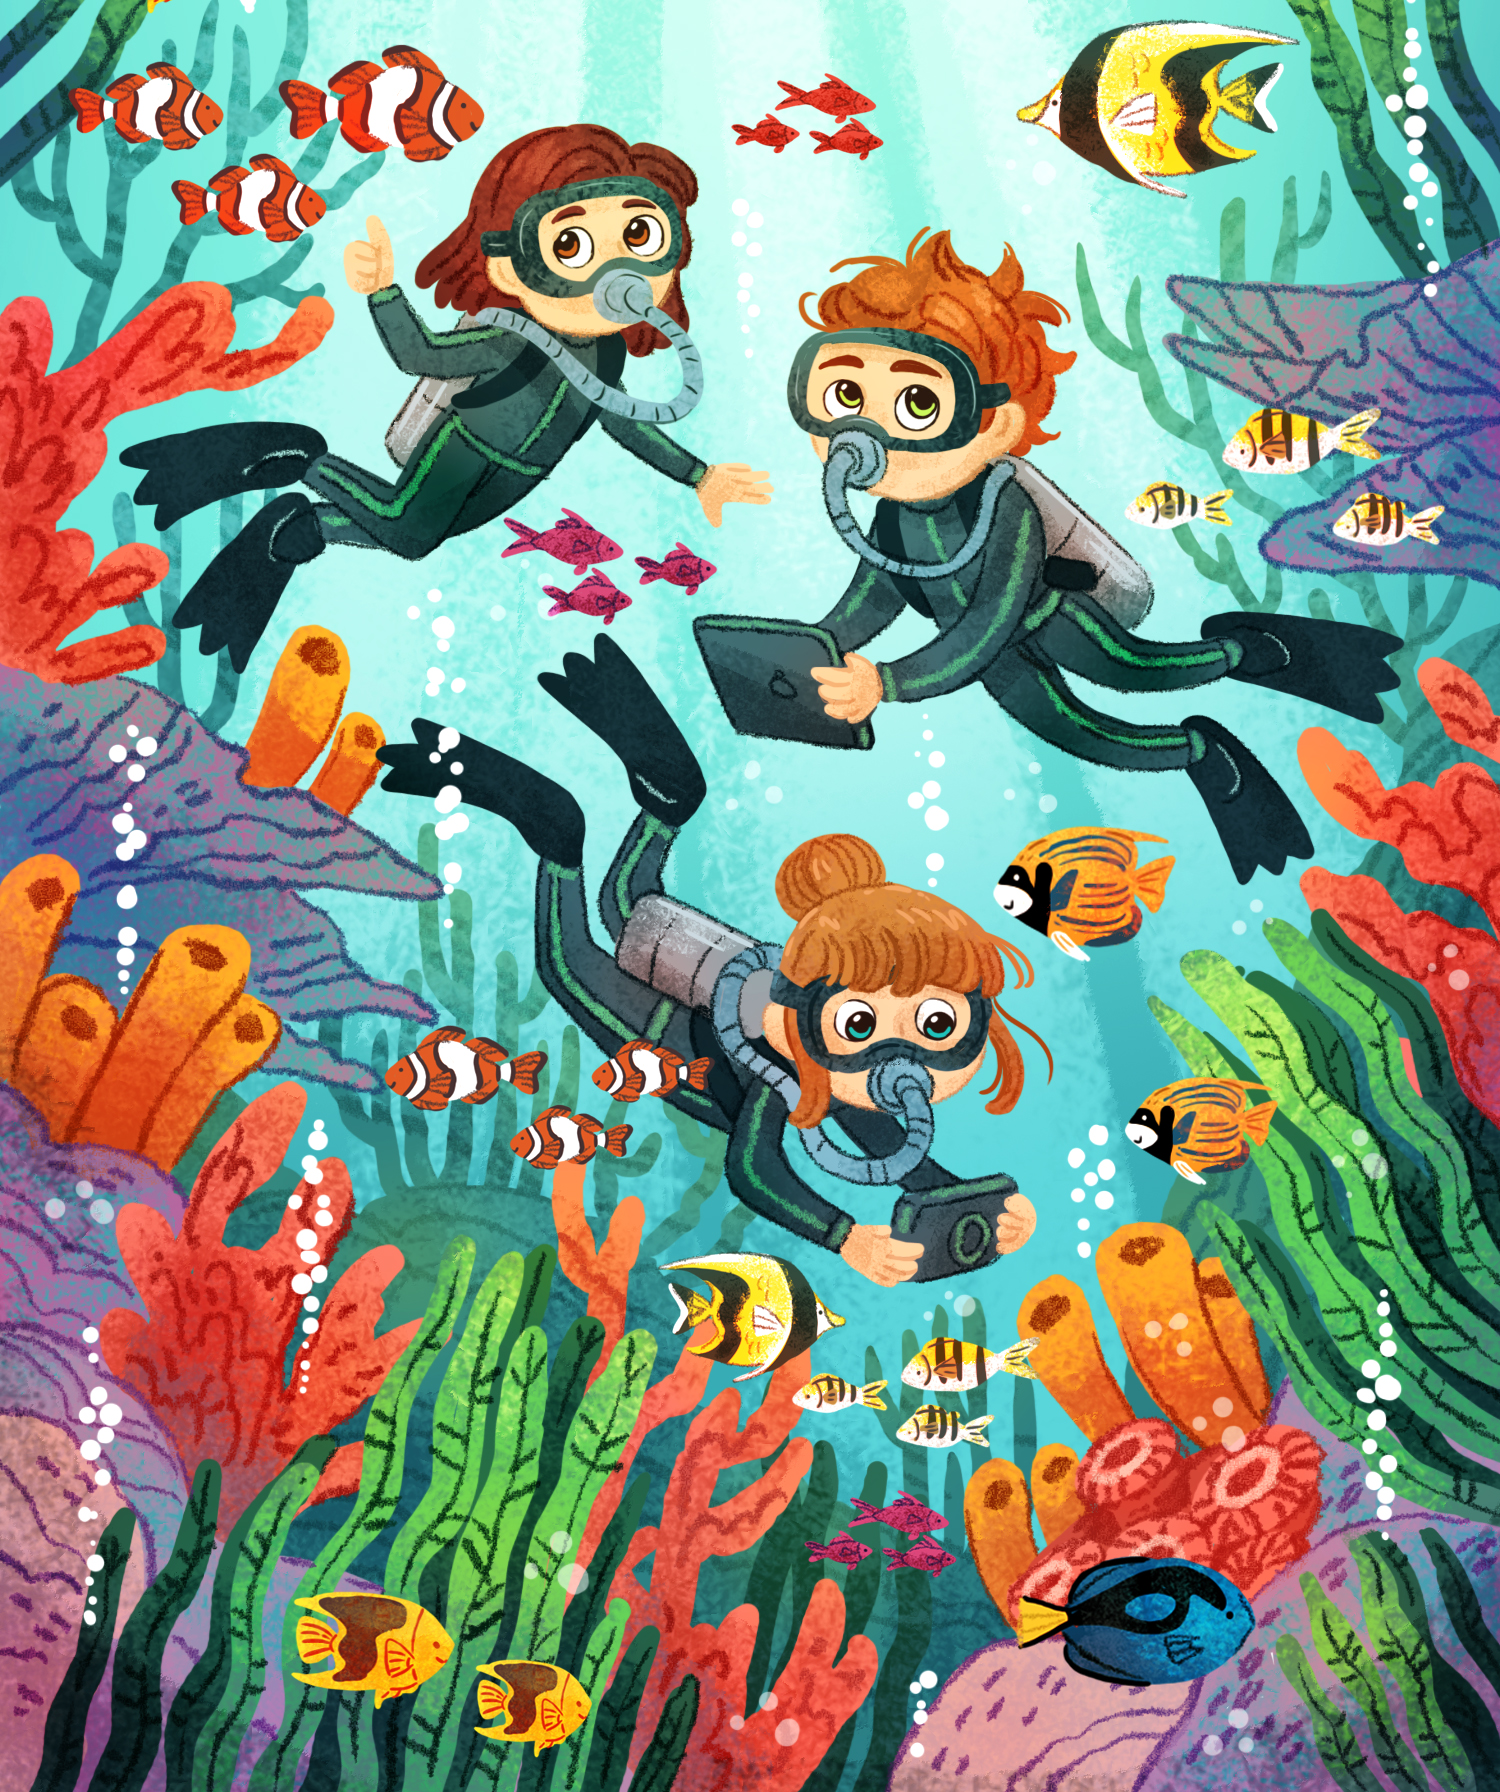 Scuba Diving_coralreef_tropicalfish_fish_nature_kids_boys and girls_.jpg